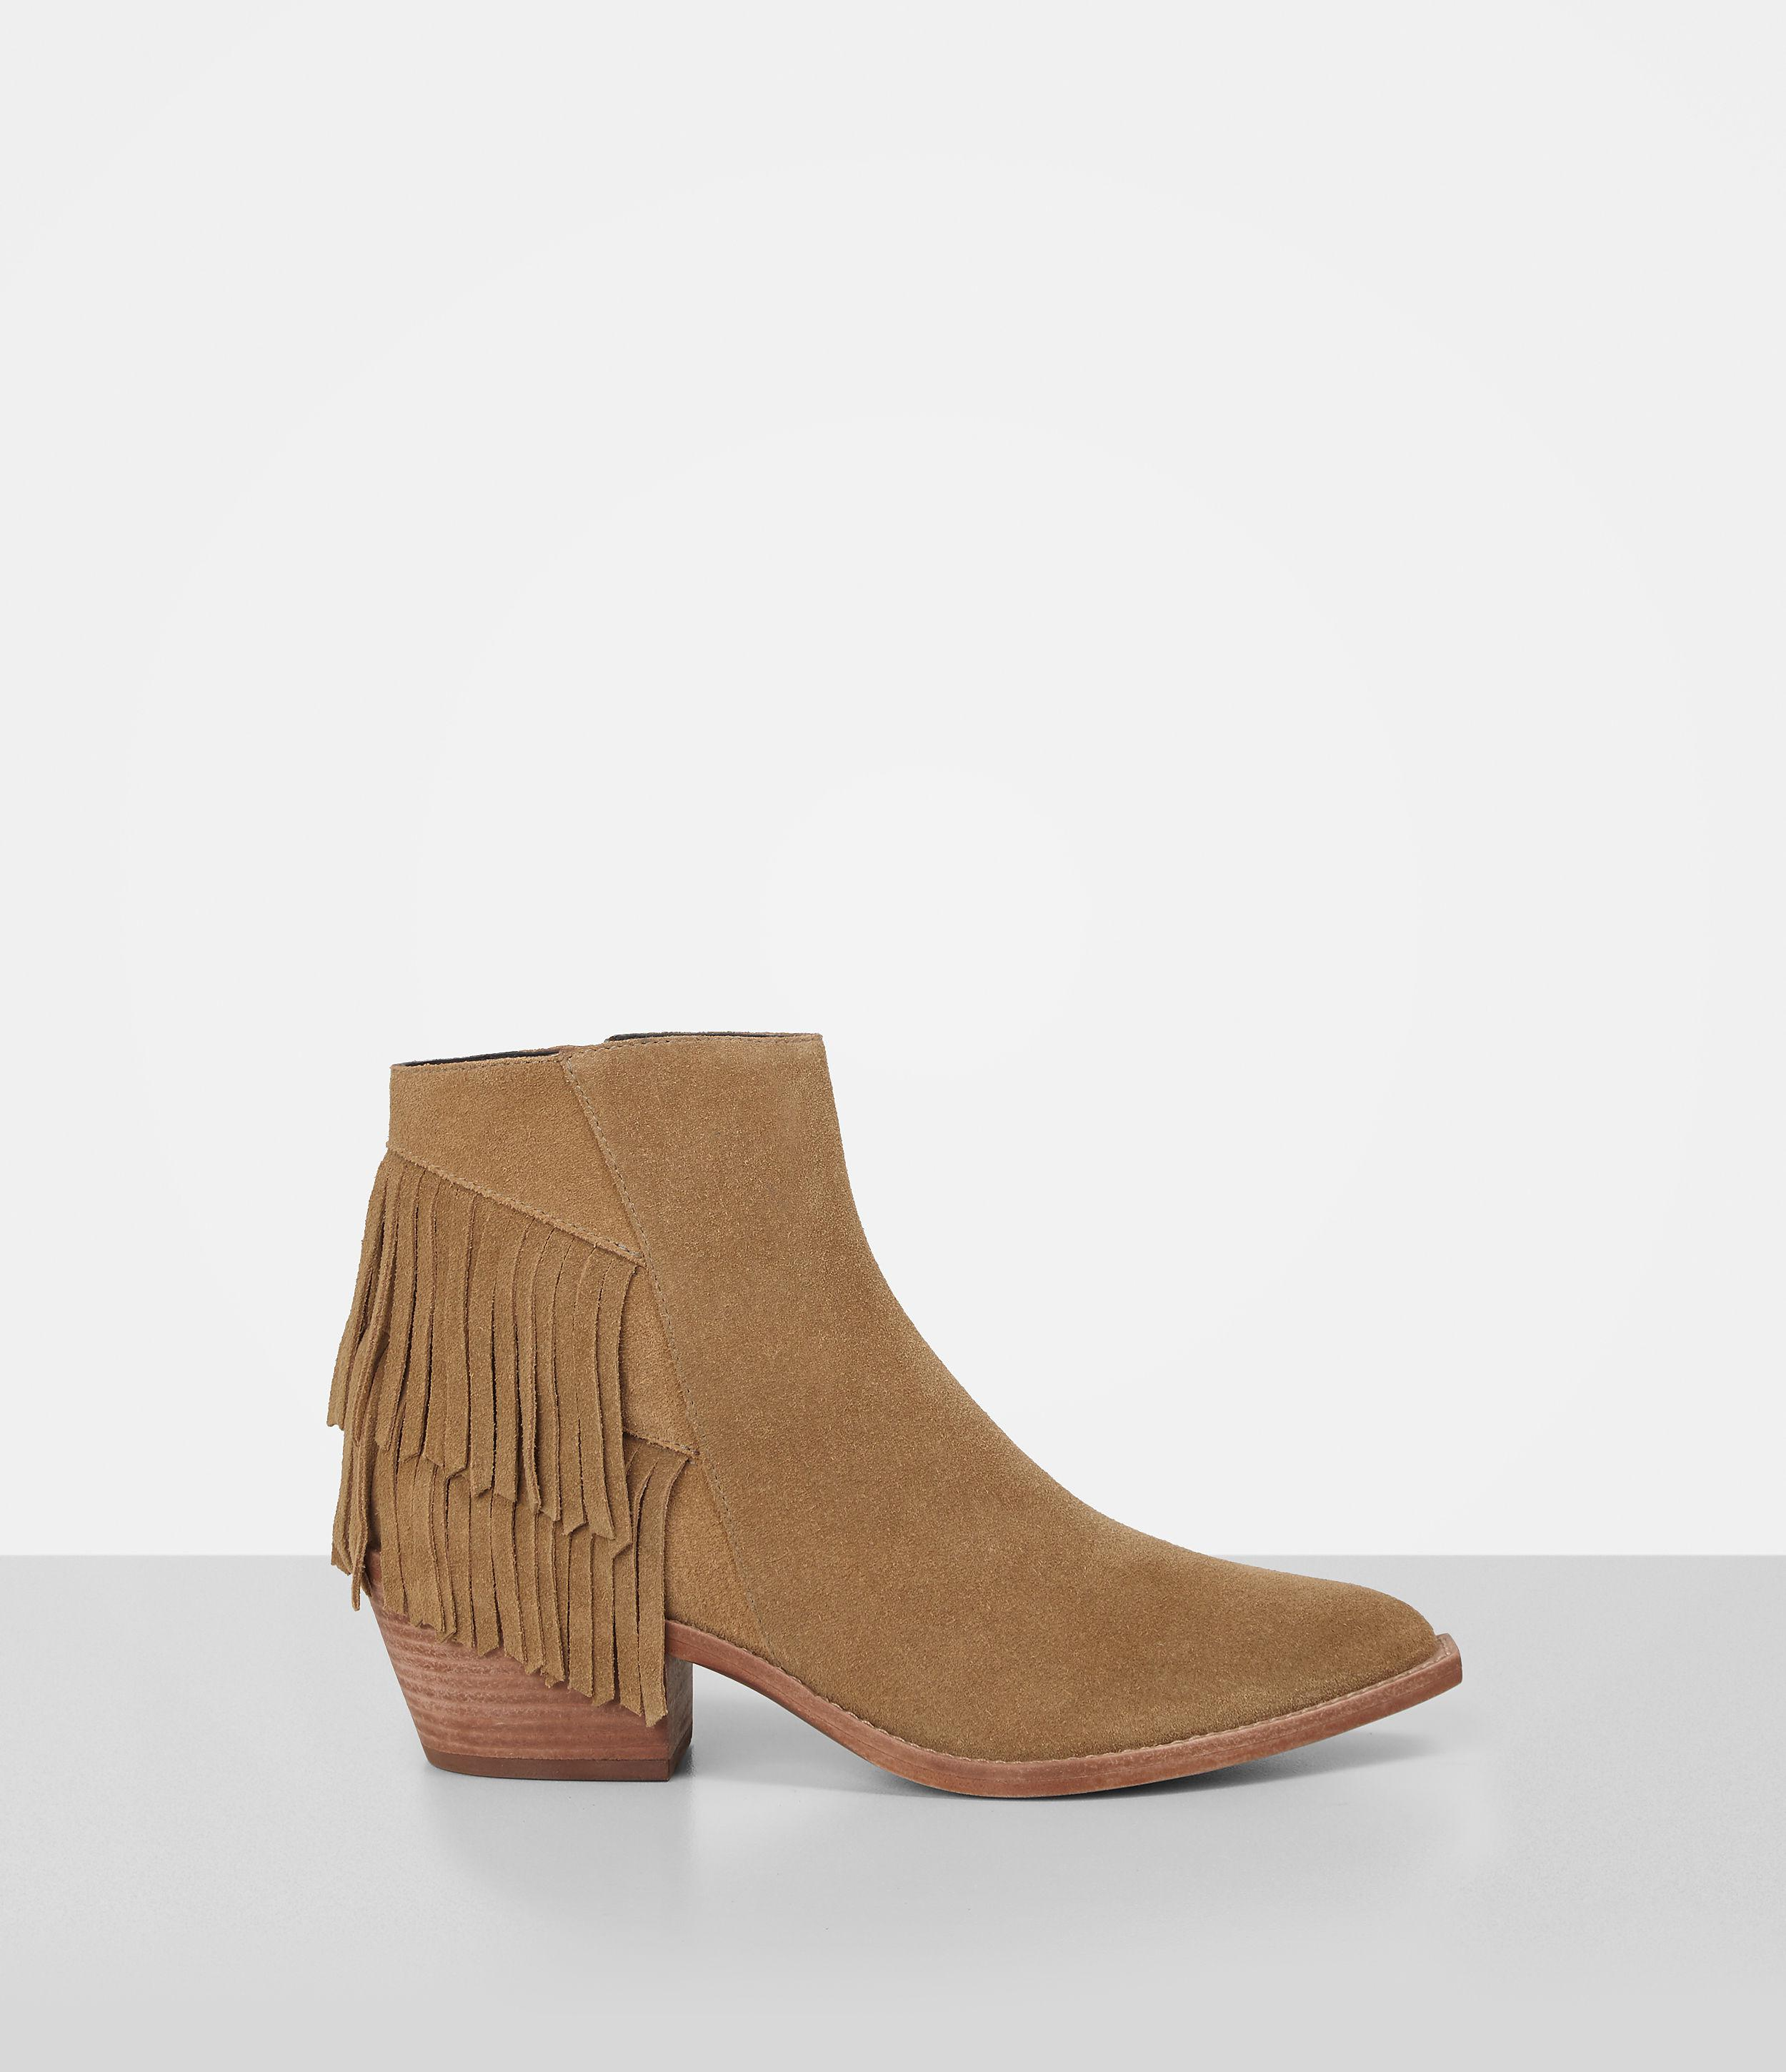 faaaf9489f11a2 Lyst - AllSaints Salerno Suede Boot